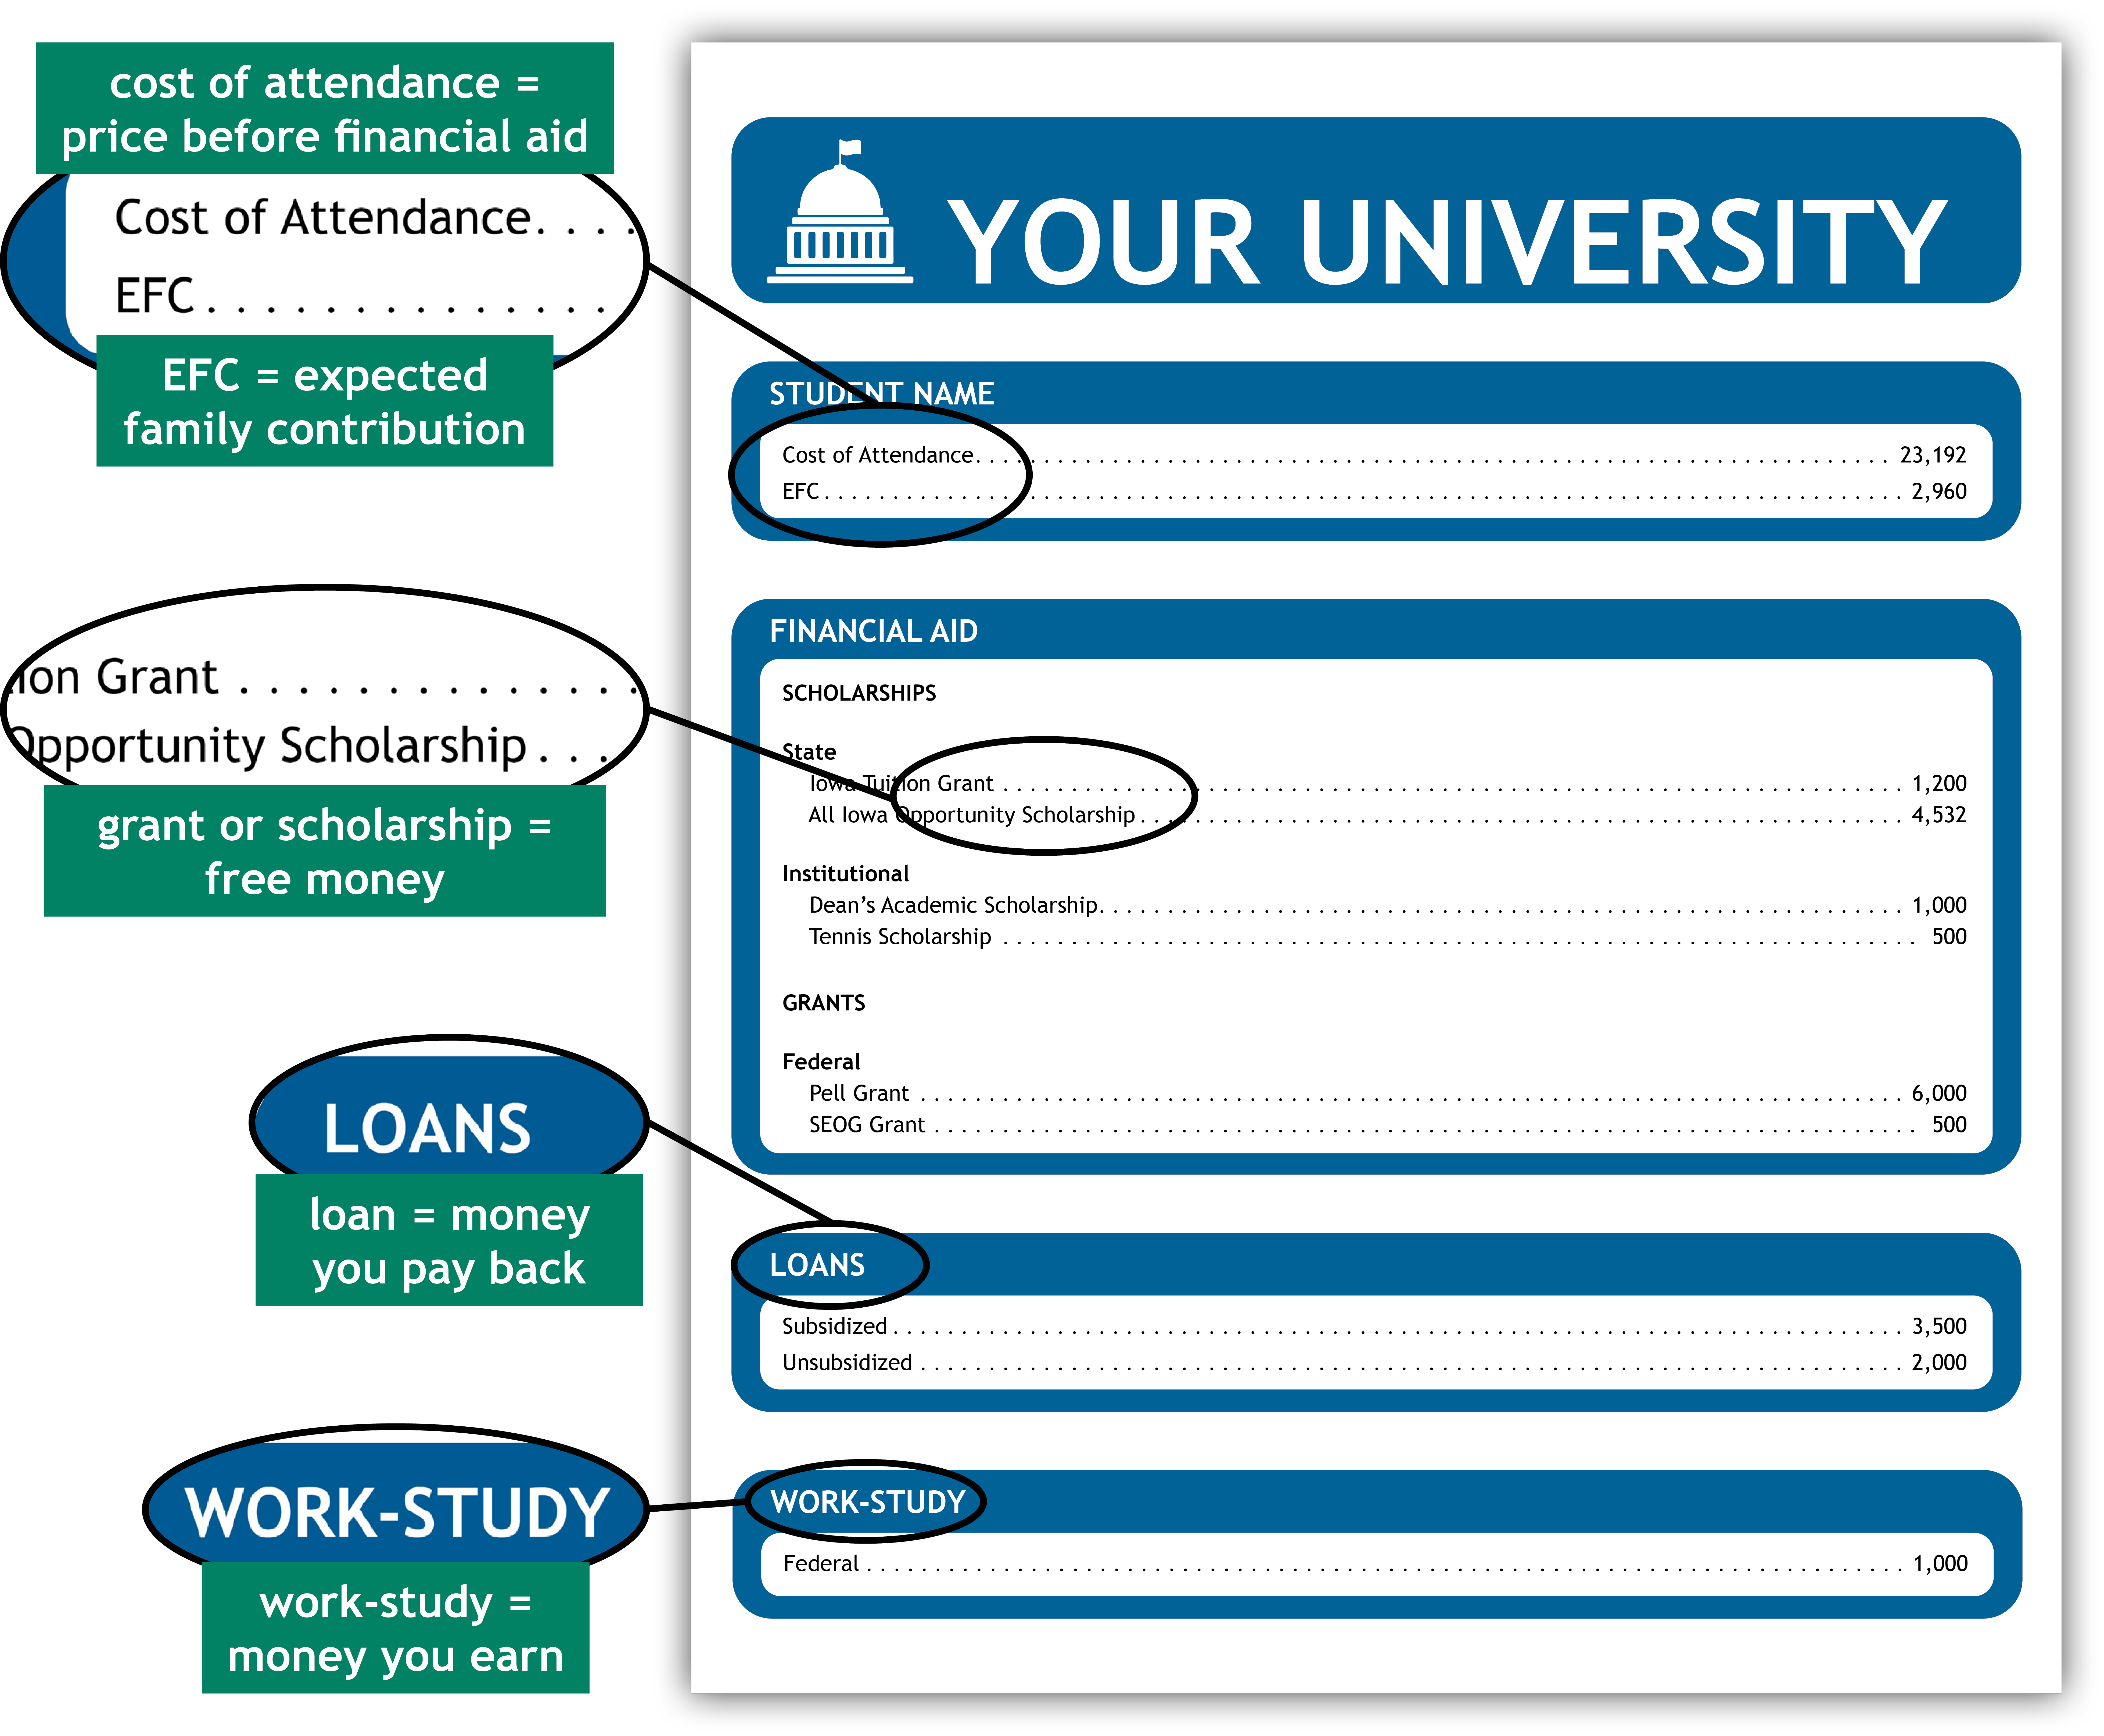 cost of attendance = price before financial aid EFC = expected family contribution grant or scholarship = free money loan = money you pay back work-study = money you earn